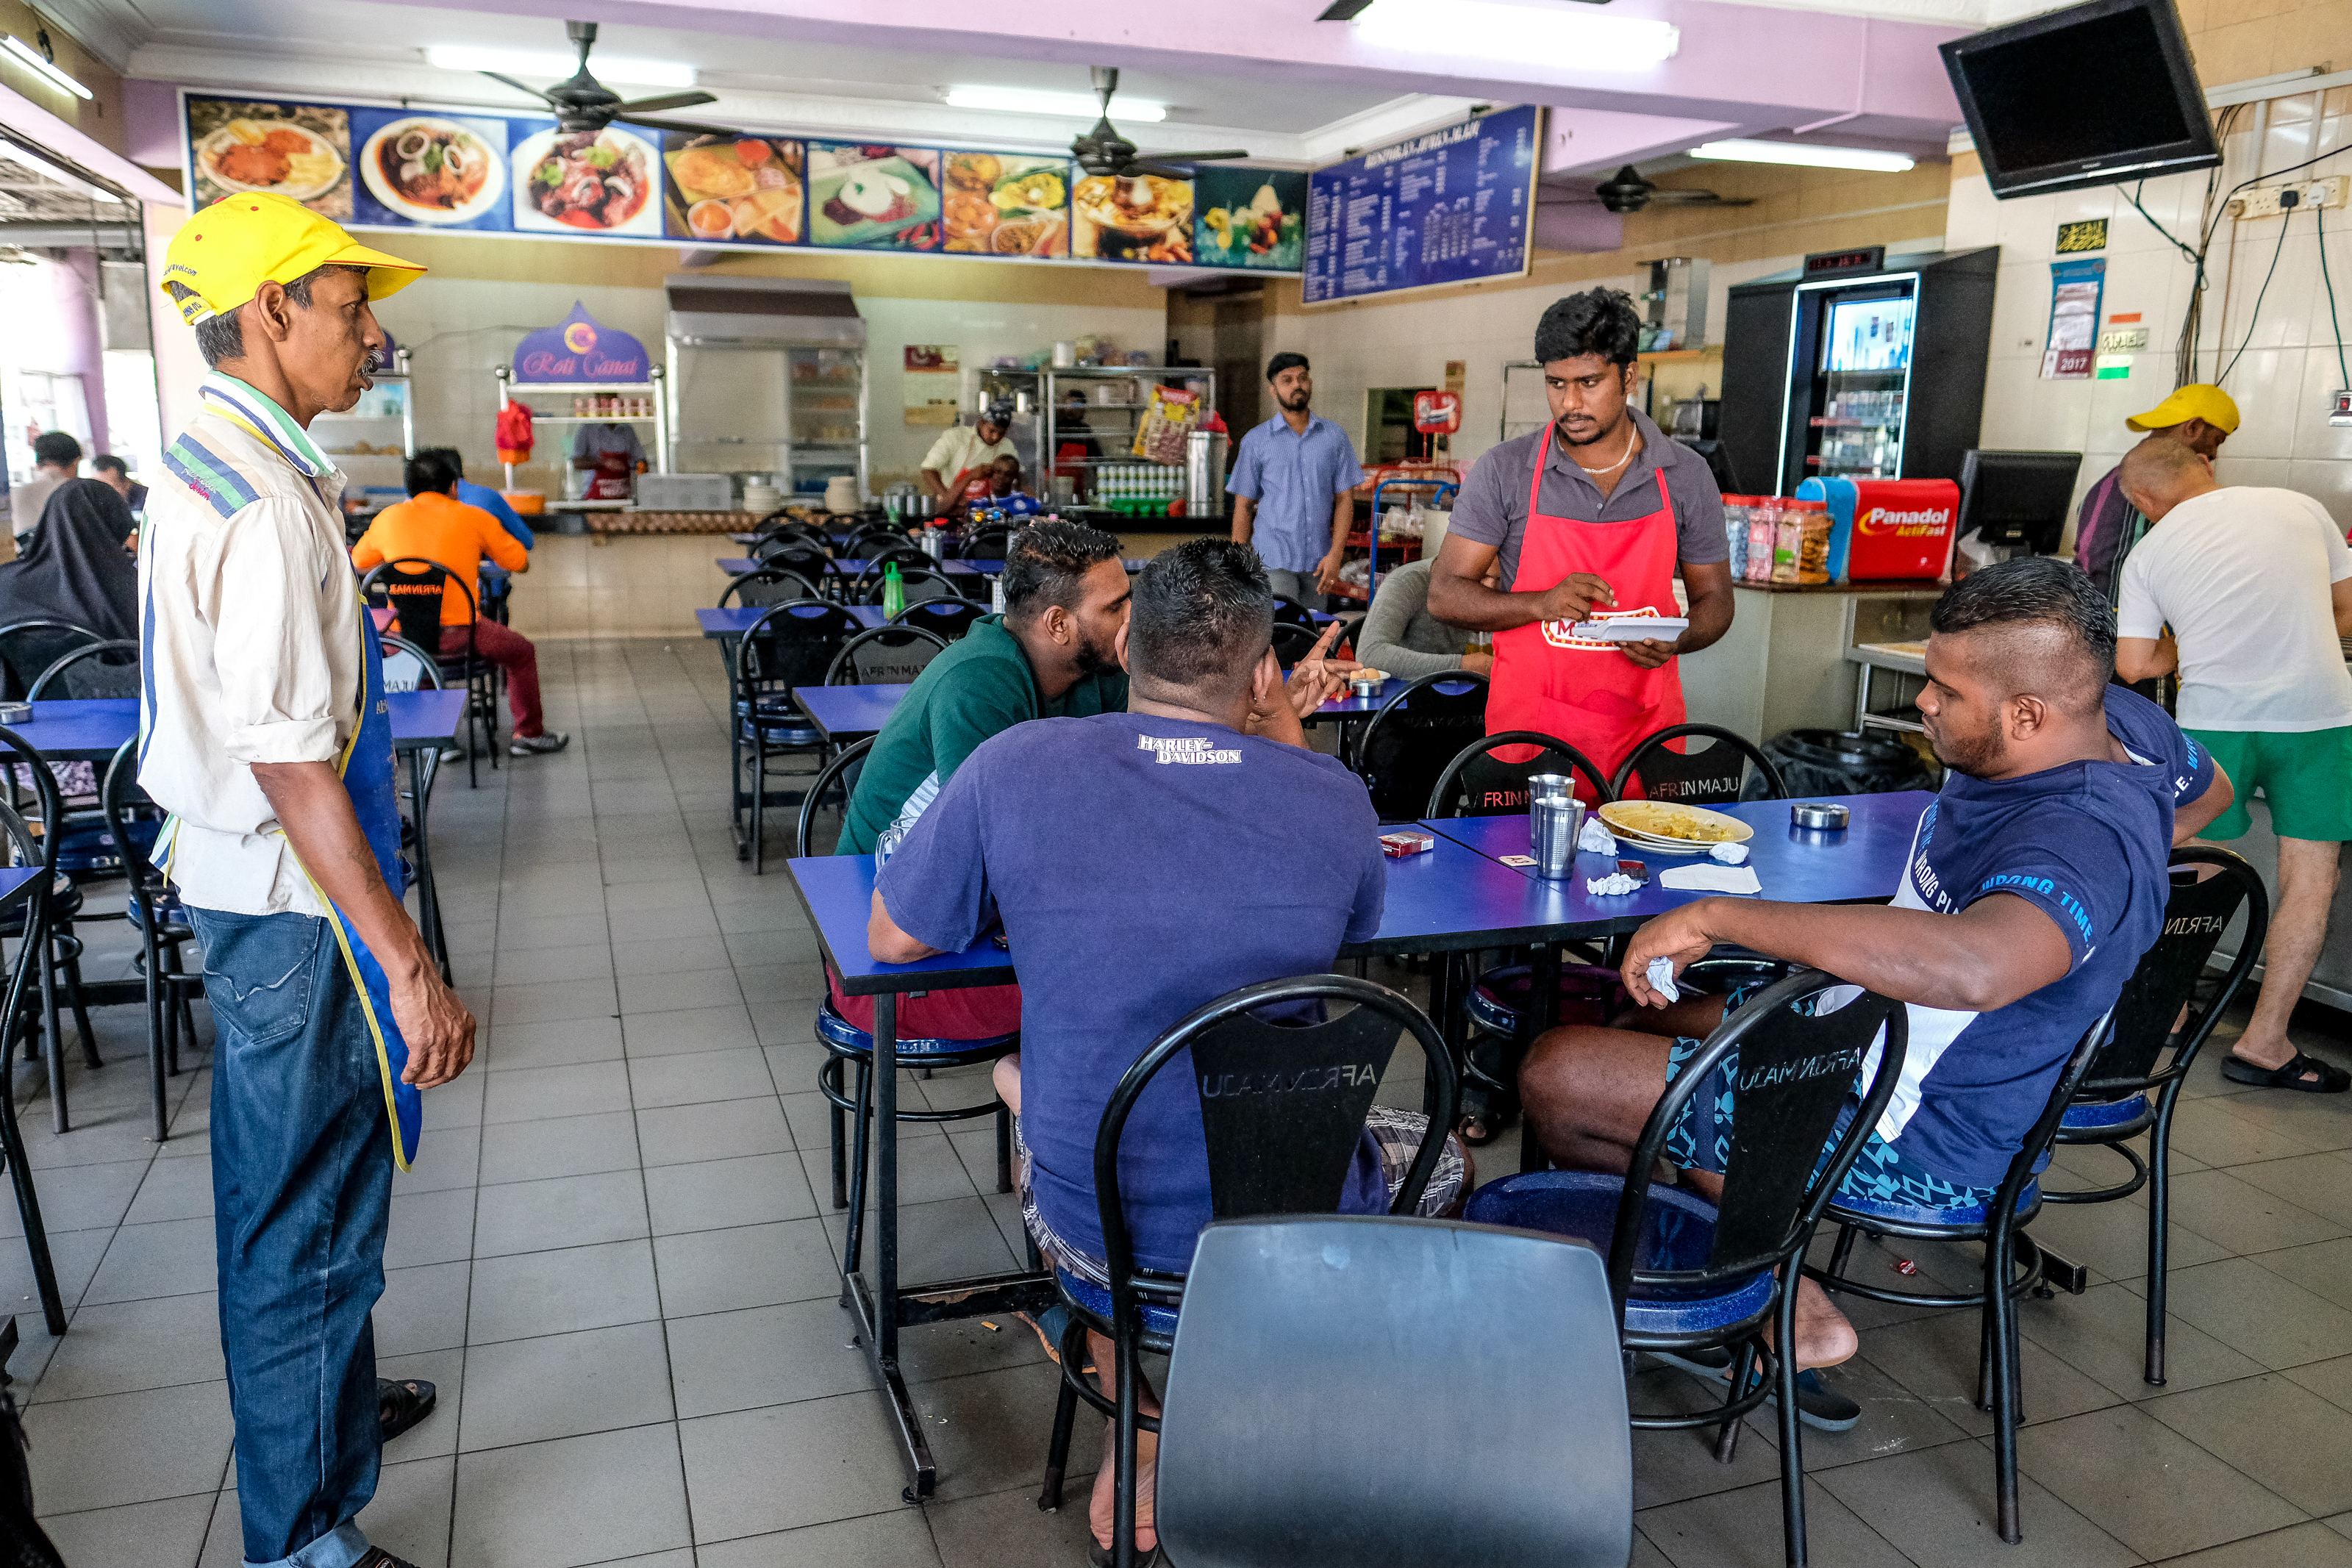 Eatery owners, operators ready for smoking ban